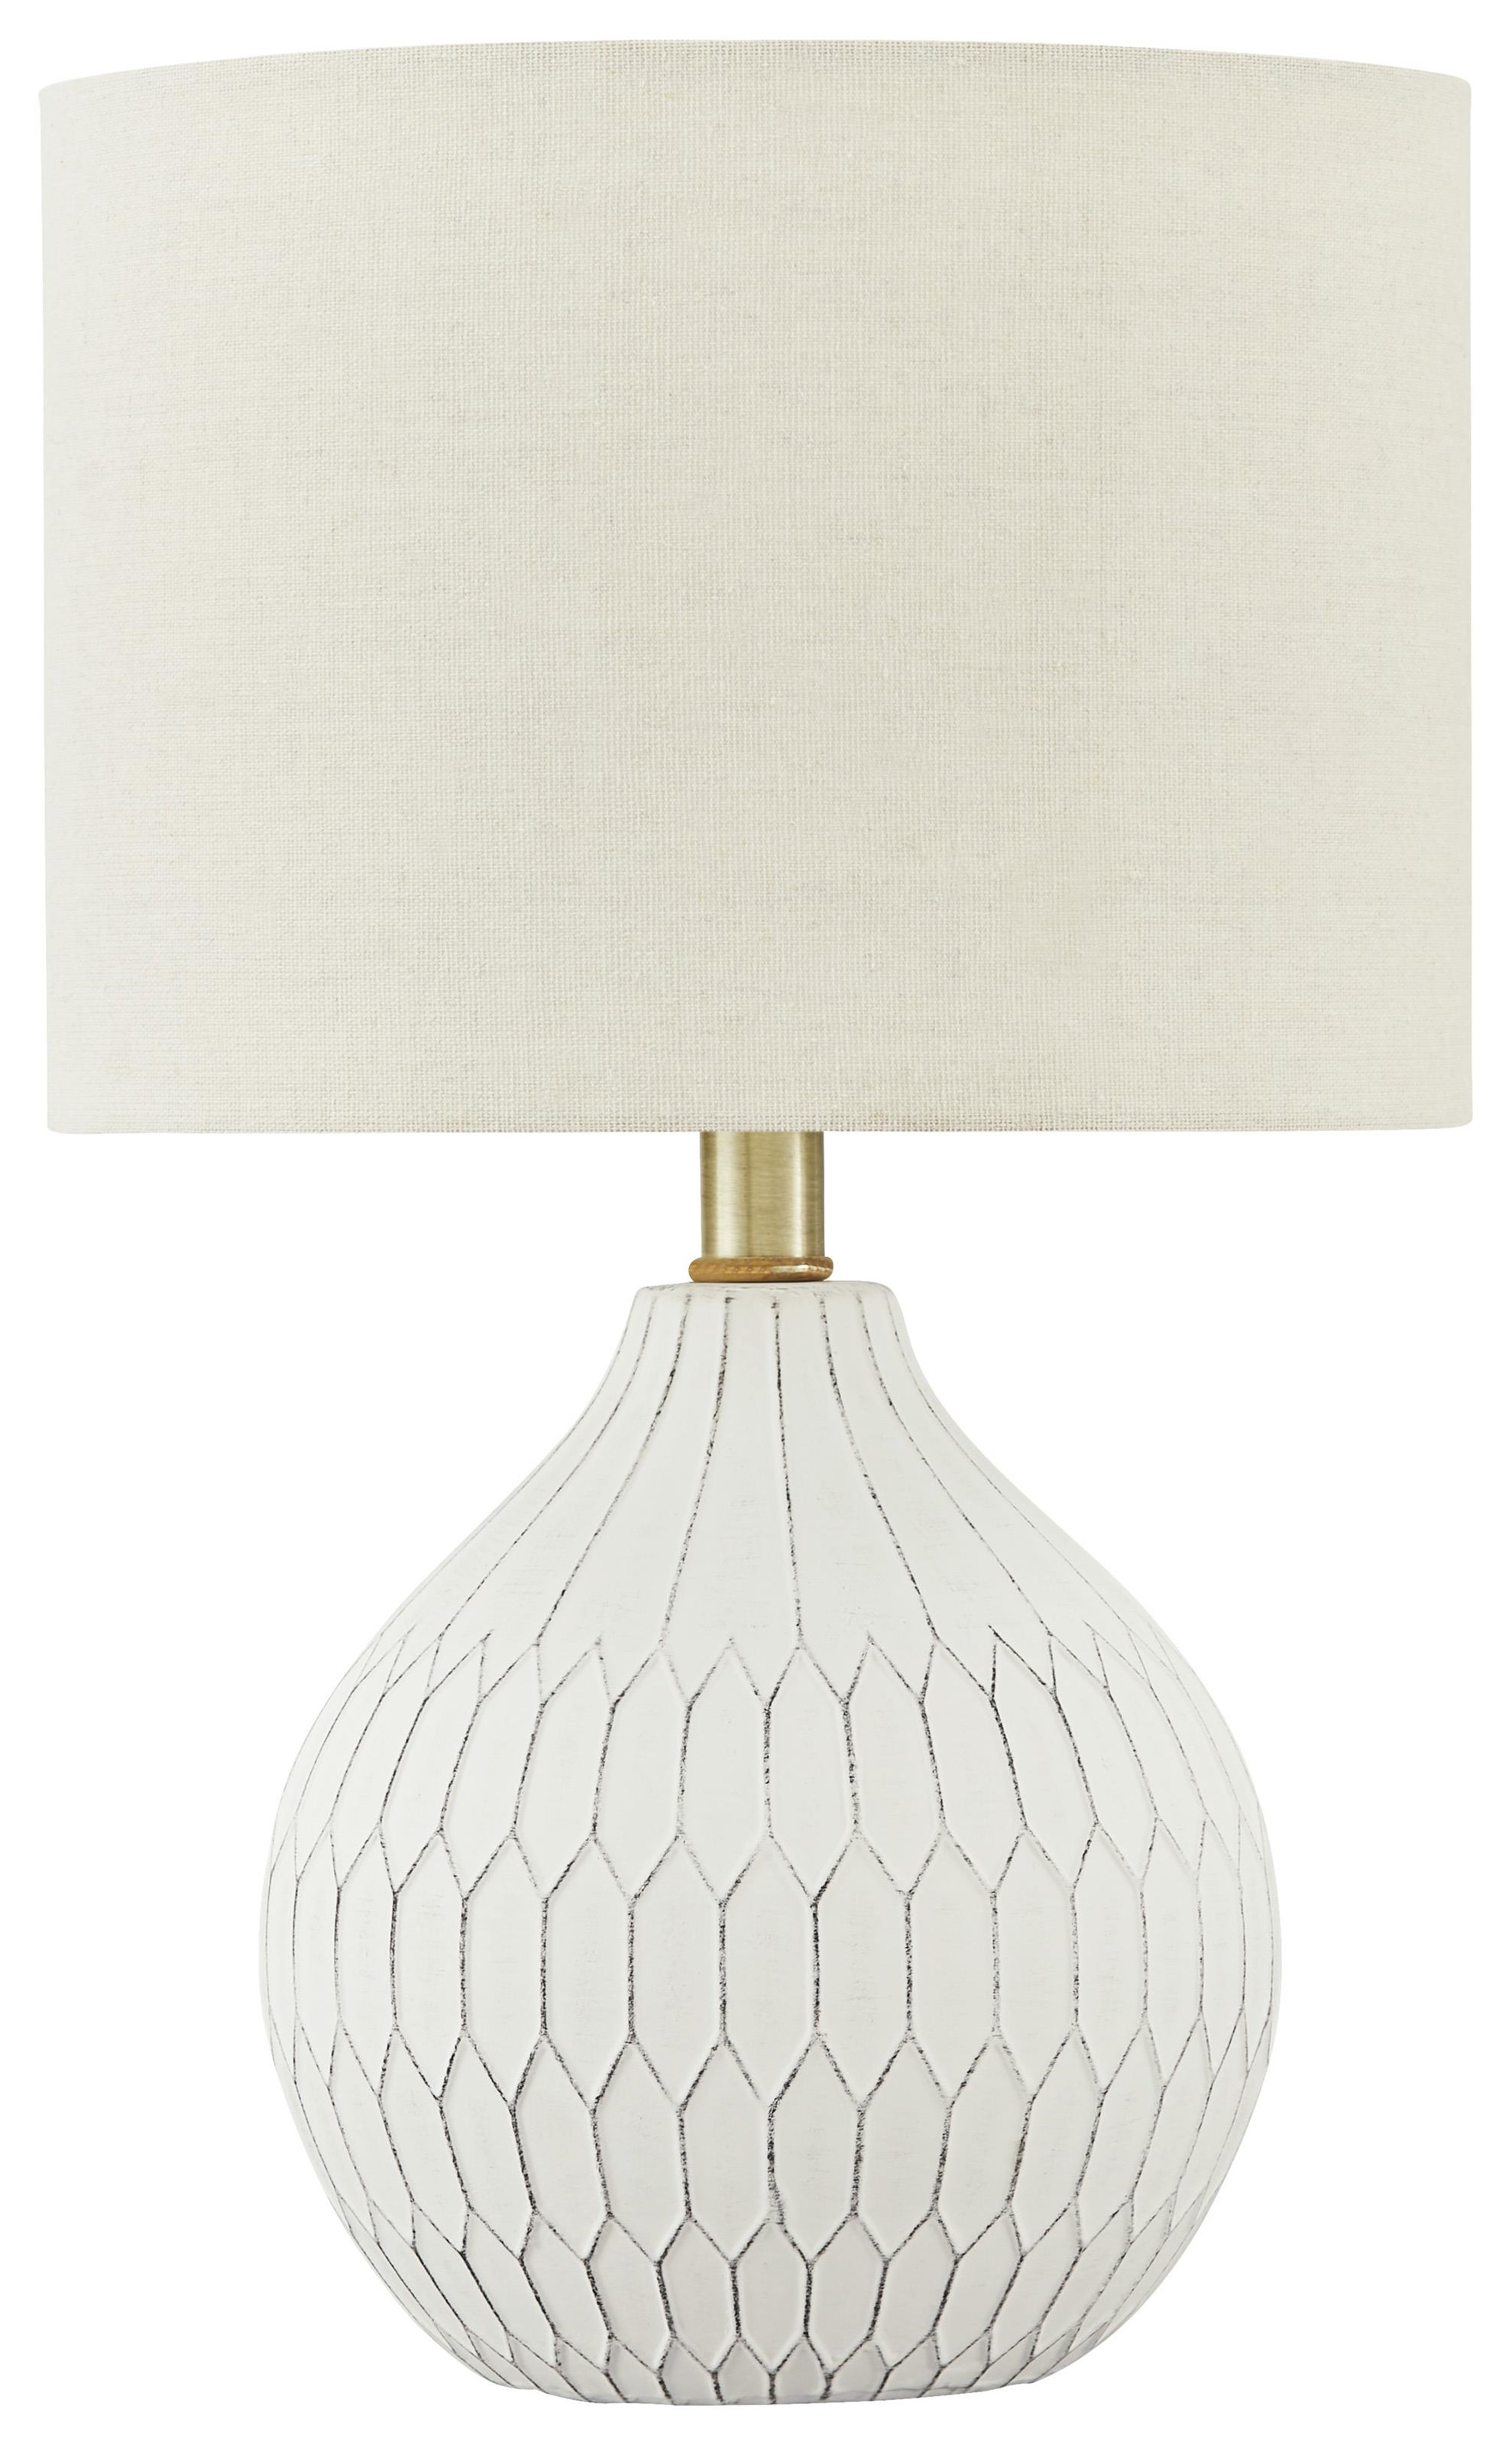 Wardmont Table Lamp by Signature Design by Ashley at Sam Levitz Outlet